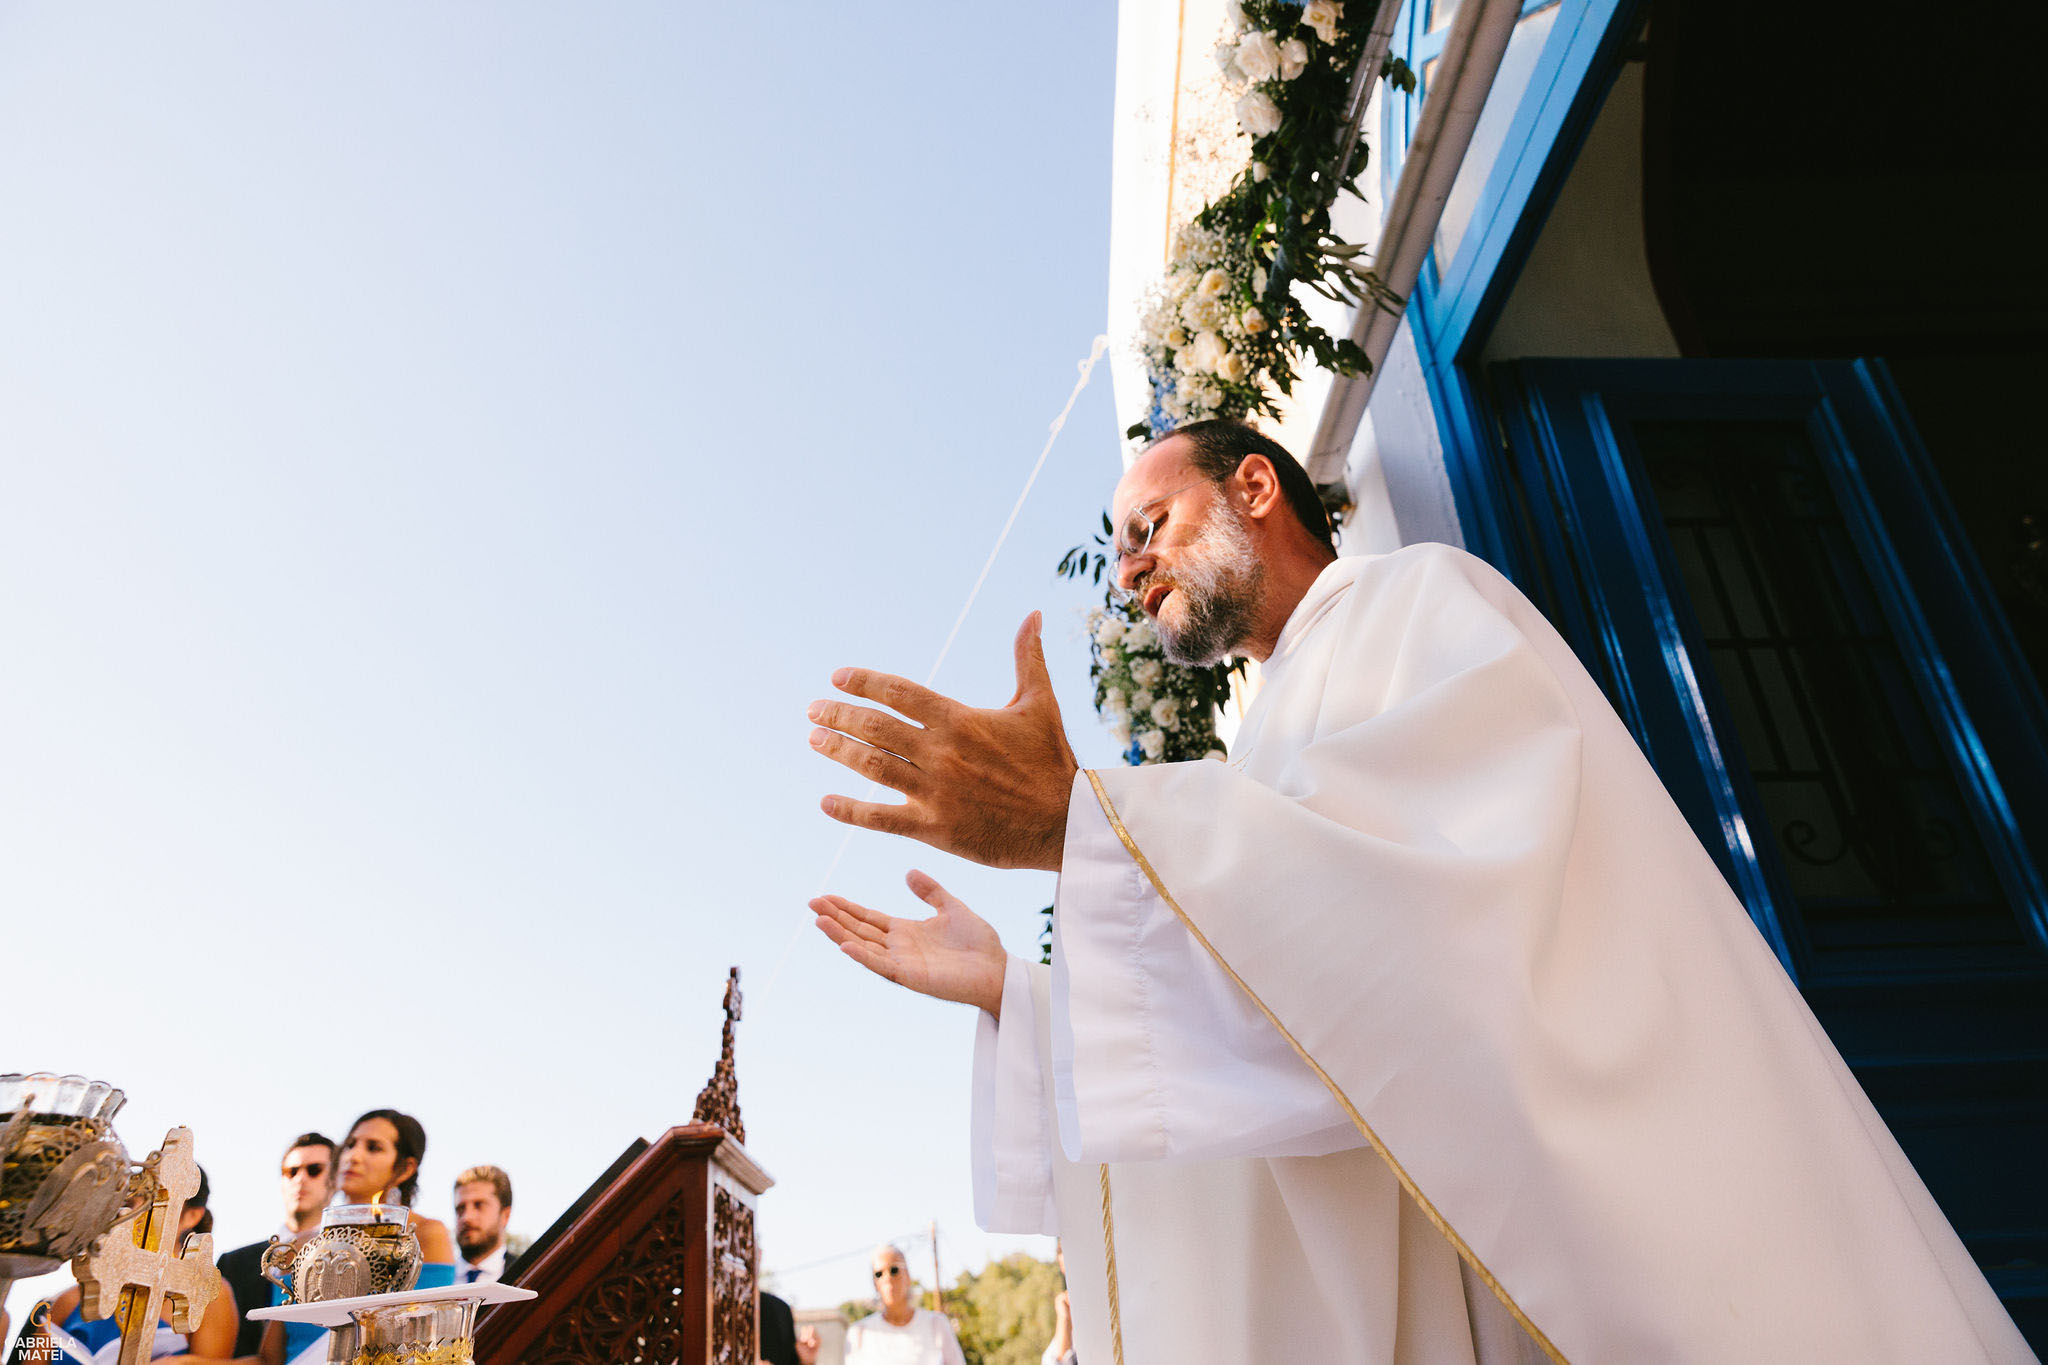 Preist praying with palms up in the air during wedding ceremony on Kea Island